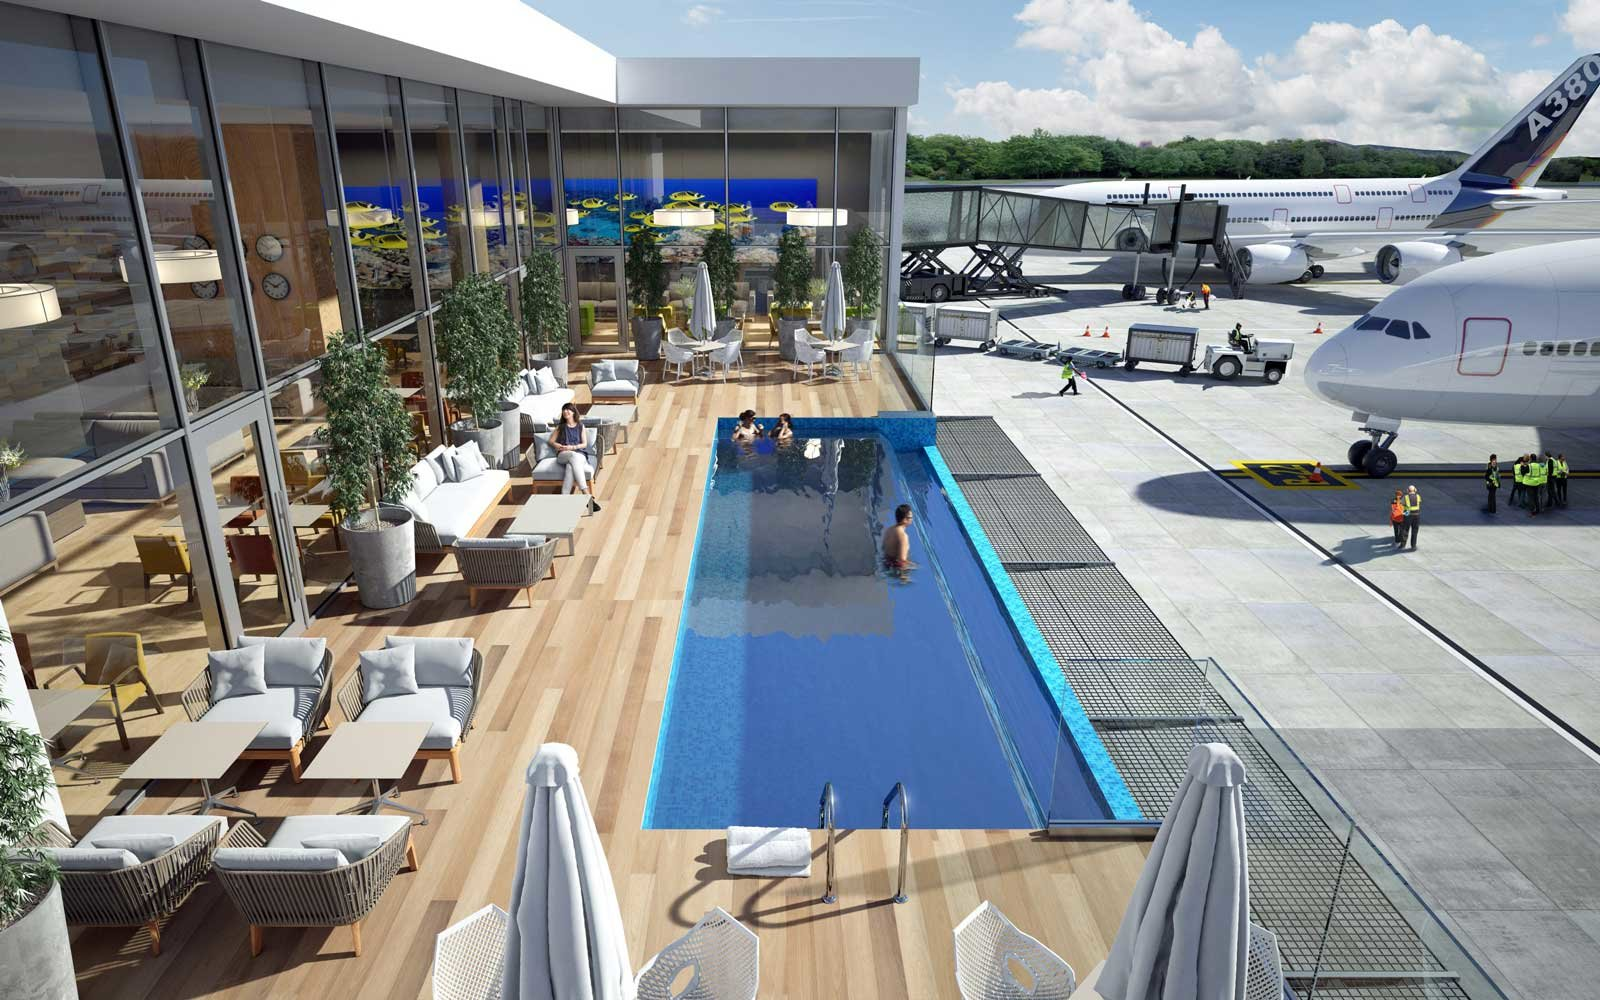 This Airport Is Getting An Outdoor Swimming Pool